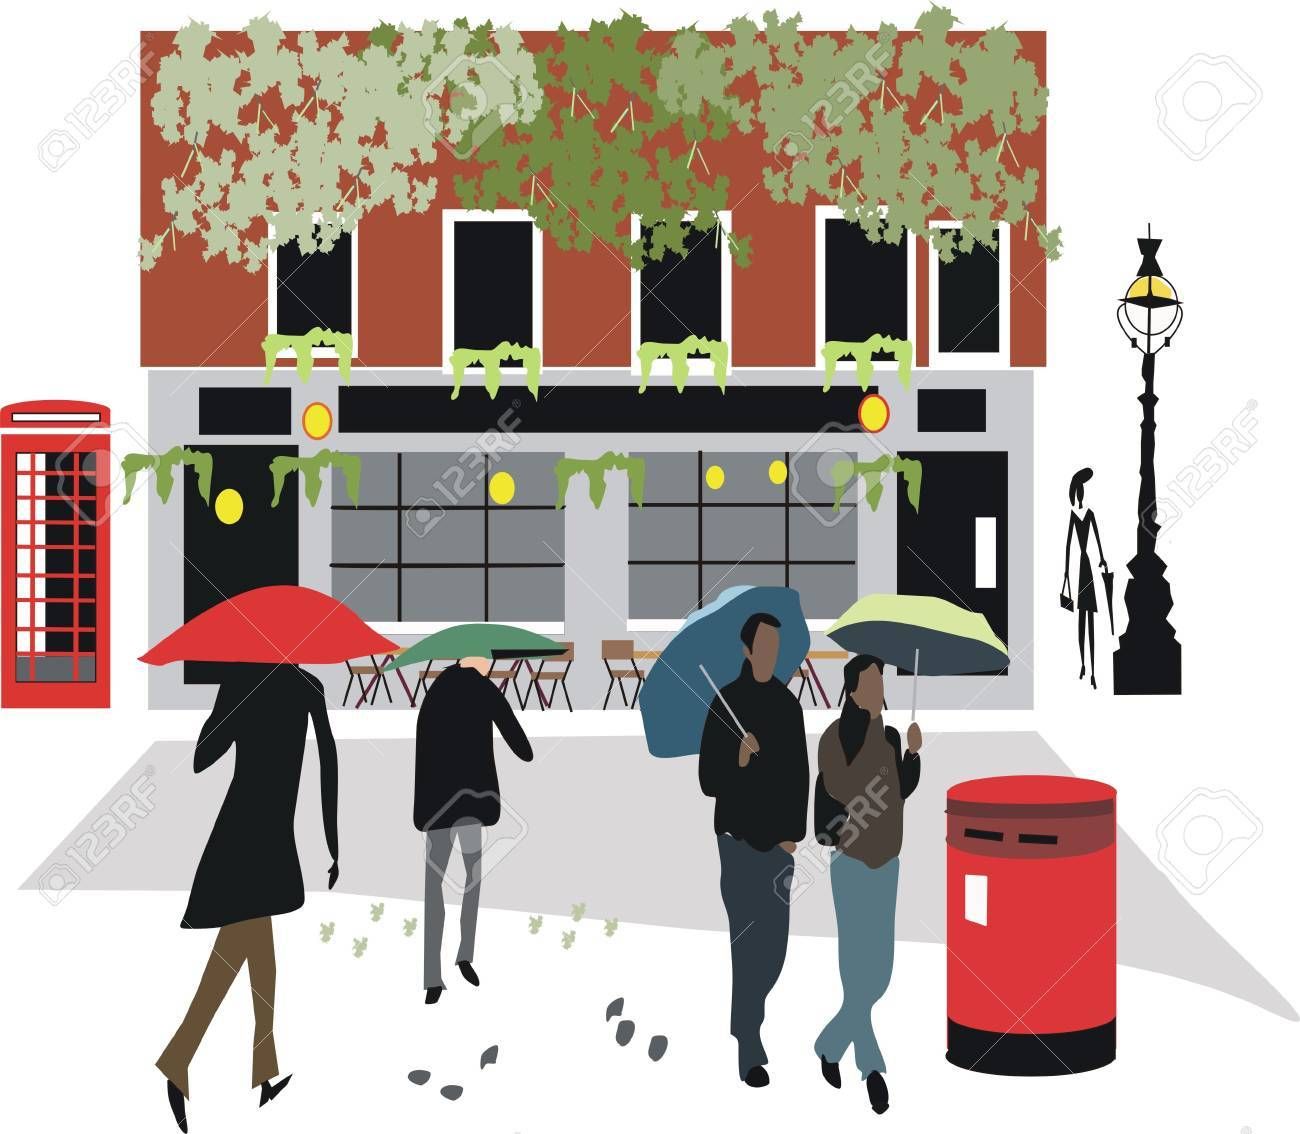 London pub illustration Stock Vector - 7778305